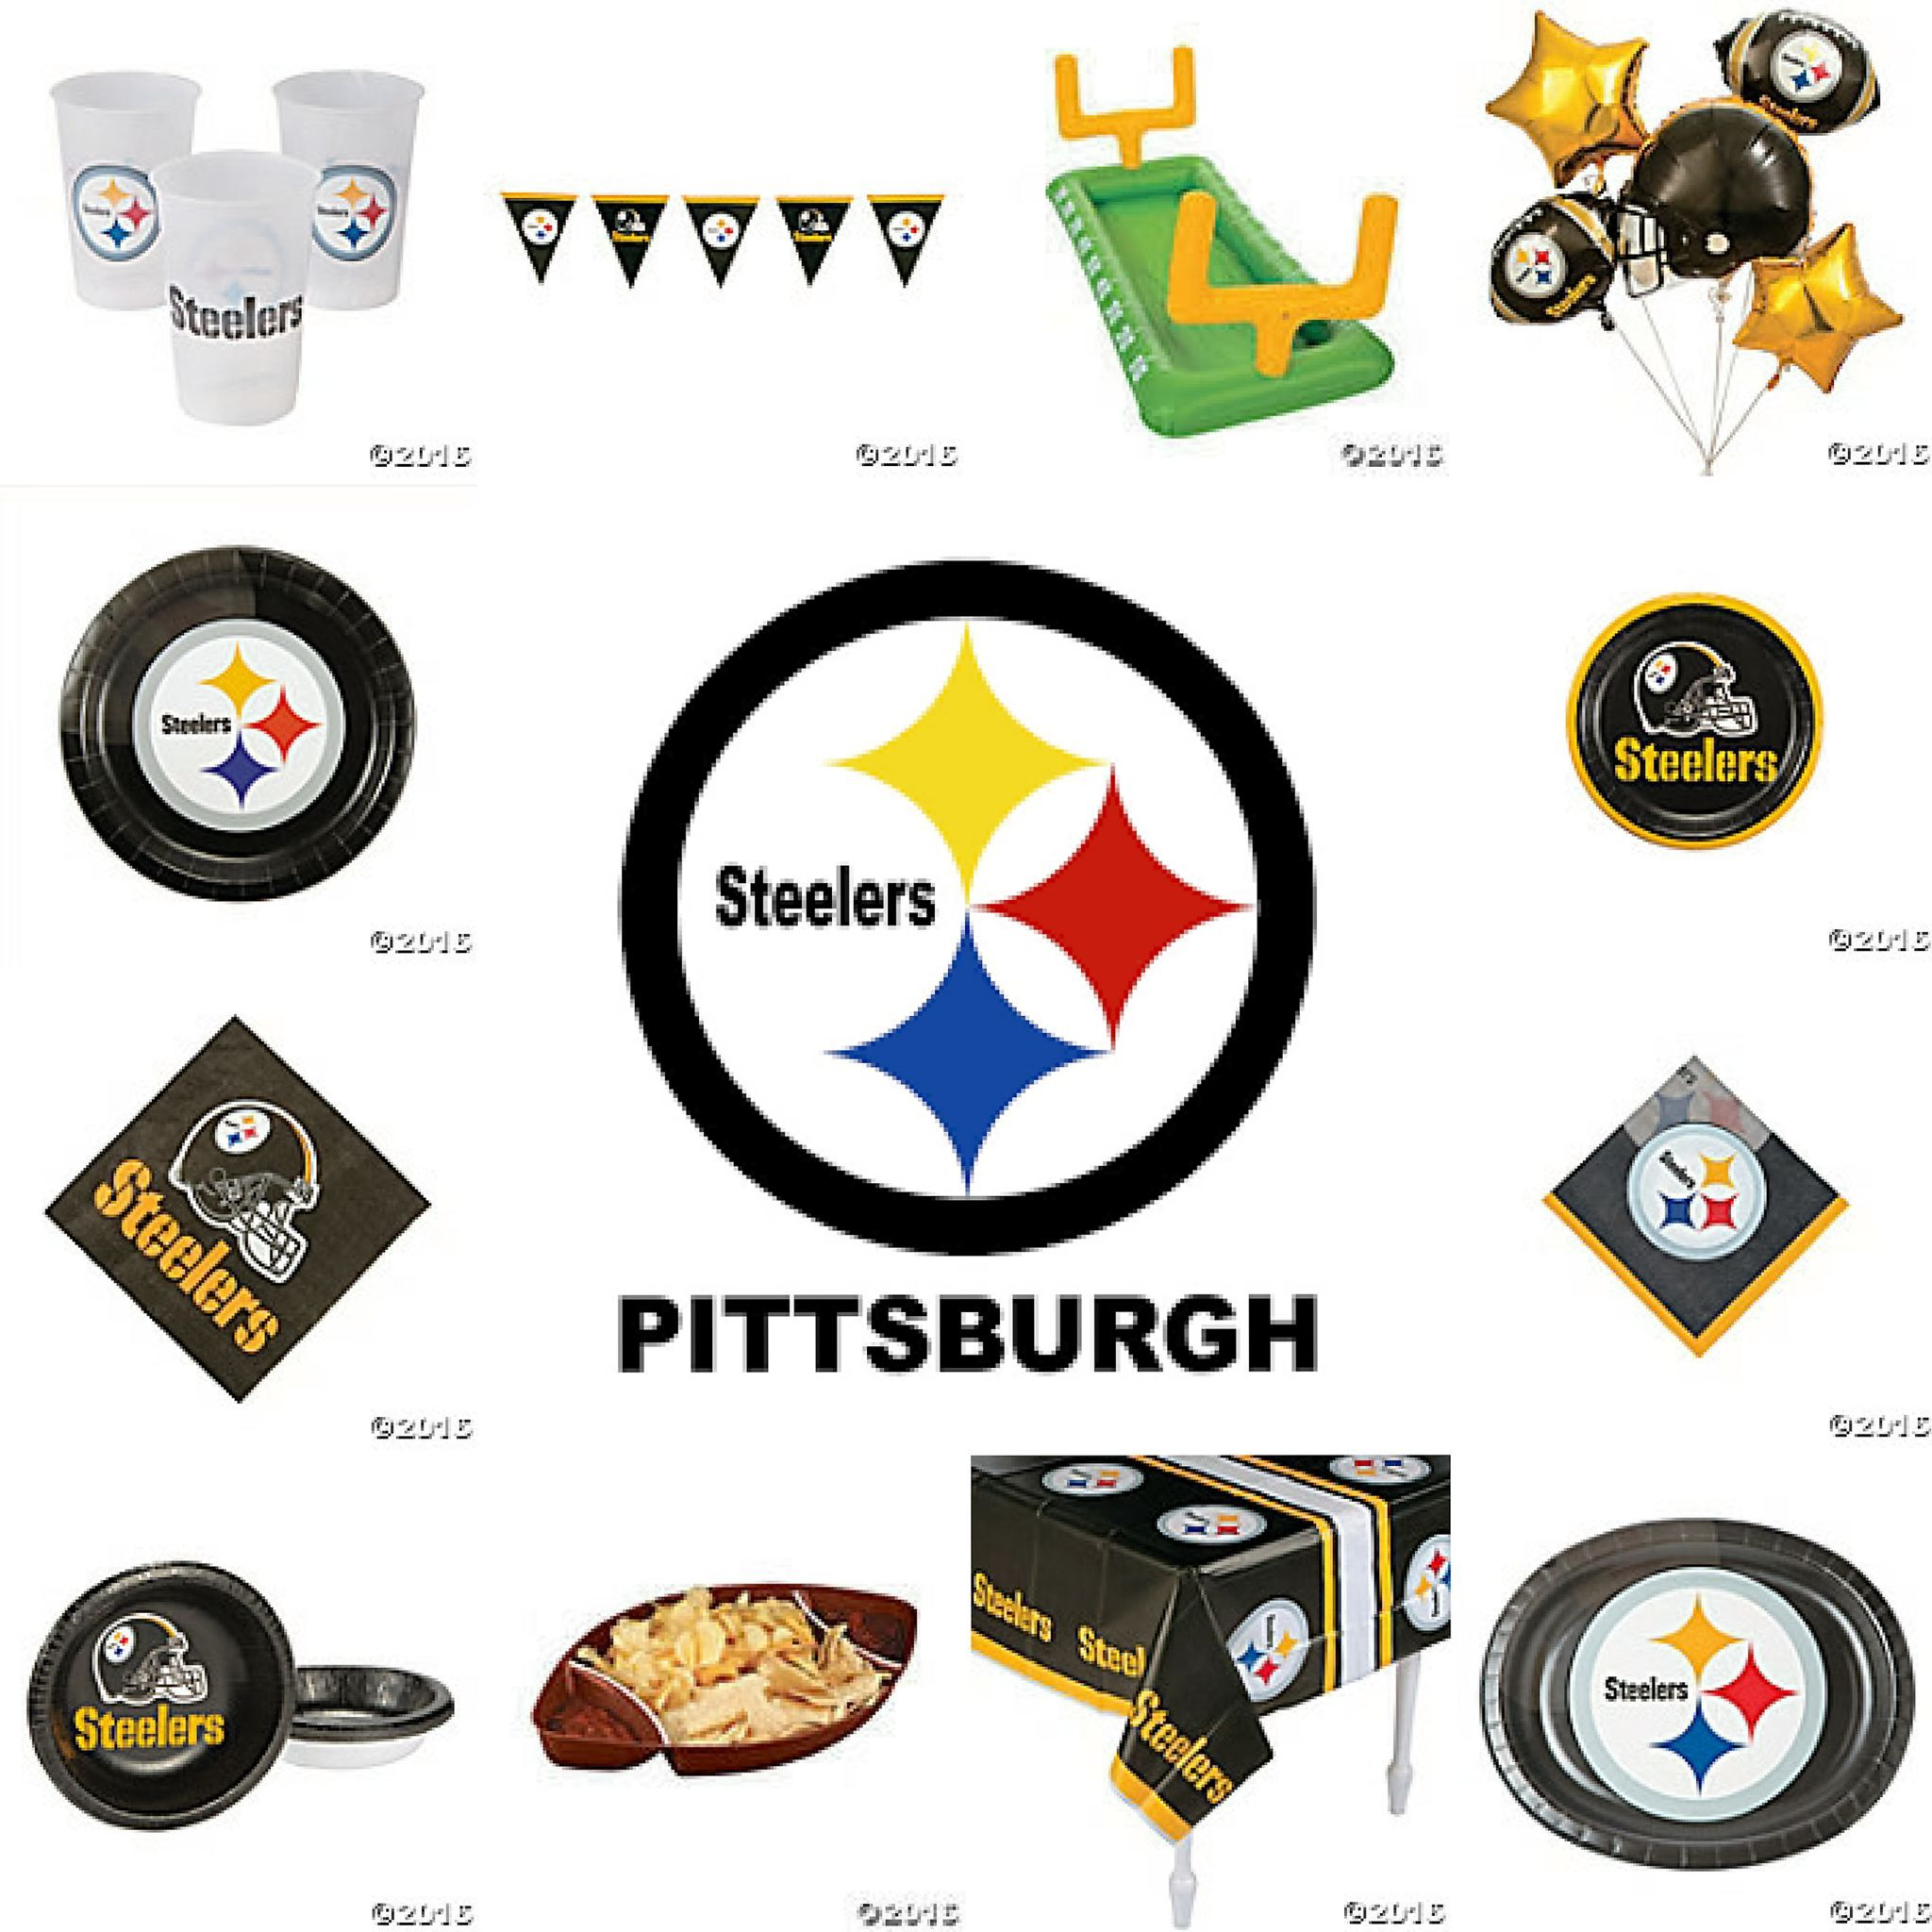 Pitsburgh Steelers NFL Football Hoopla Party Pack | Steelers party ...